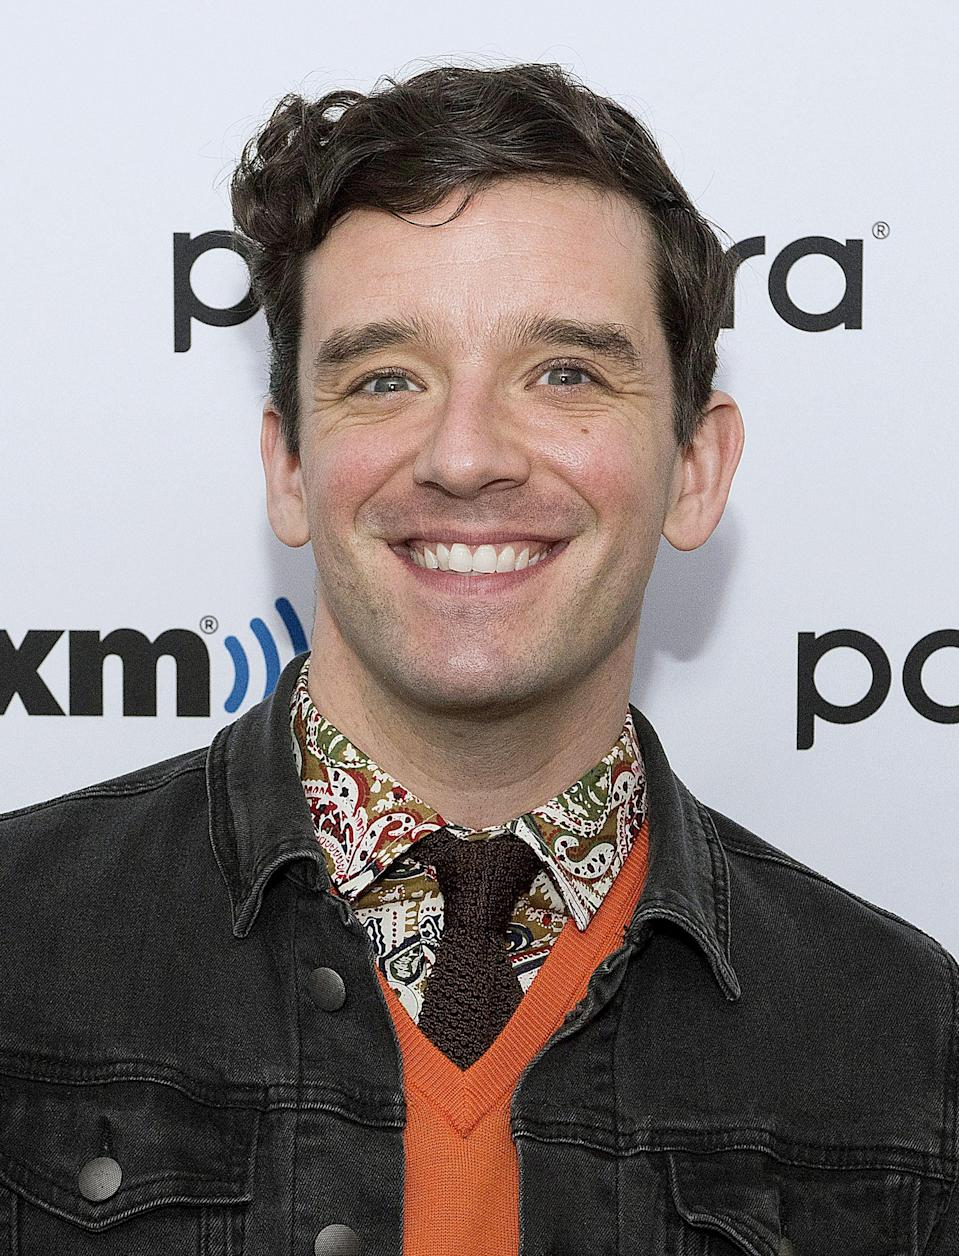 <p>The TV and Broadway star will play the protagonist, Peter, a perpetually single gay man who's dreading going home to face his family. To avoid their judgment, he convinces his friend to pretend to be his date for the holidays, but it turns out his mother has other plans. </p> <p>You most likely recognize Urie from his scene-stealing role as Marc on the comedy <strong>Ugly Betty</strong>. Since then, he's appeared on a wide variety of TV shows and also spent some time on Broadway. He was last seen there in the play <strong>Grand Horizons</strong>, which closed in March 2020.</p>